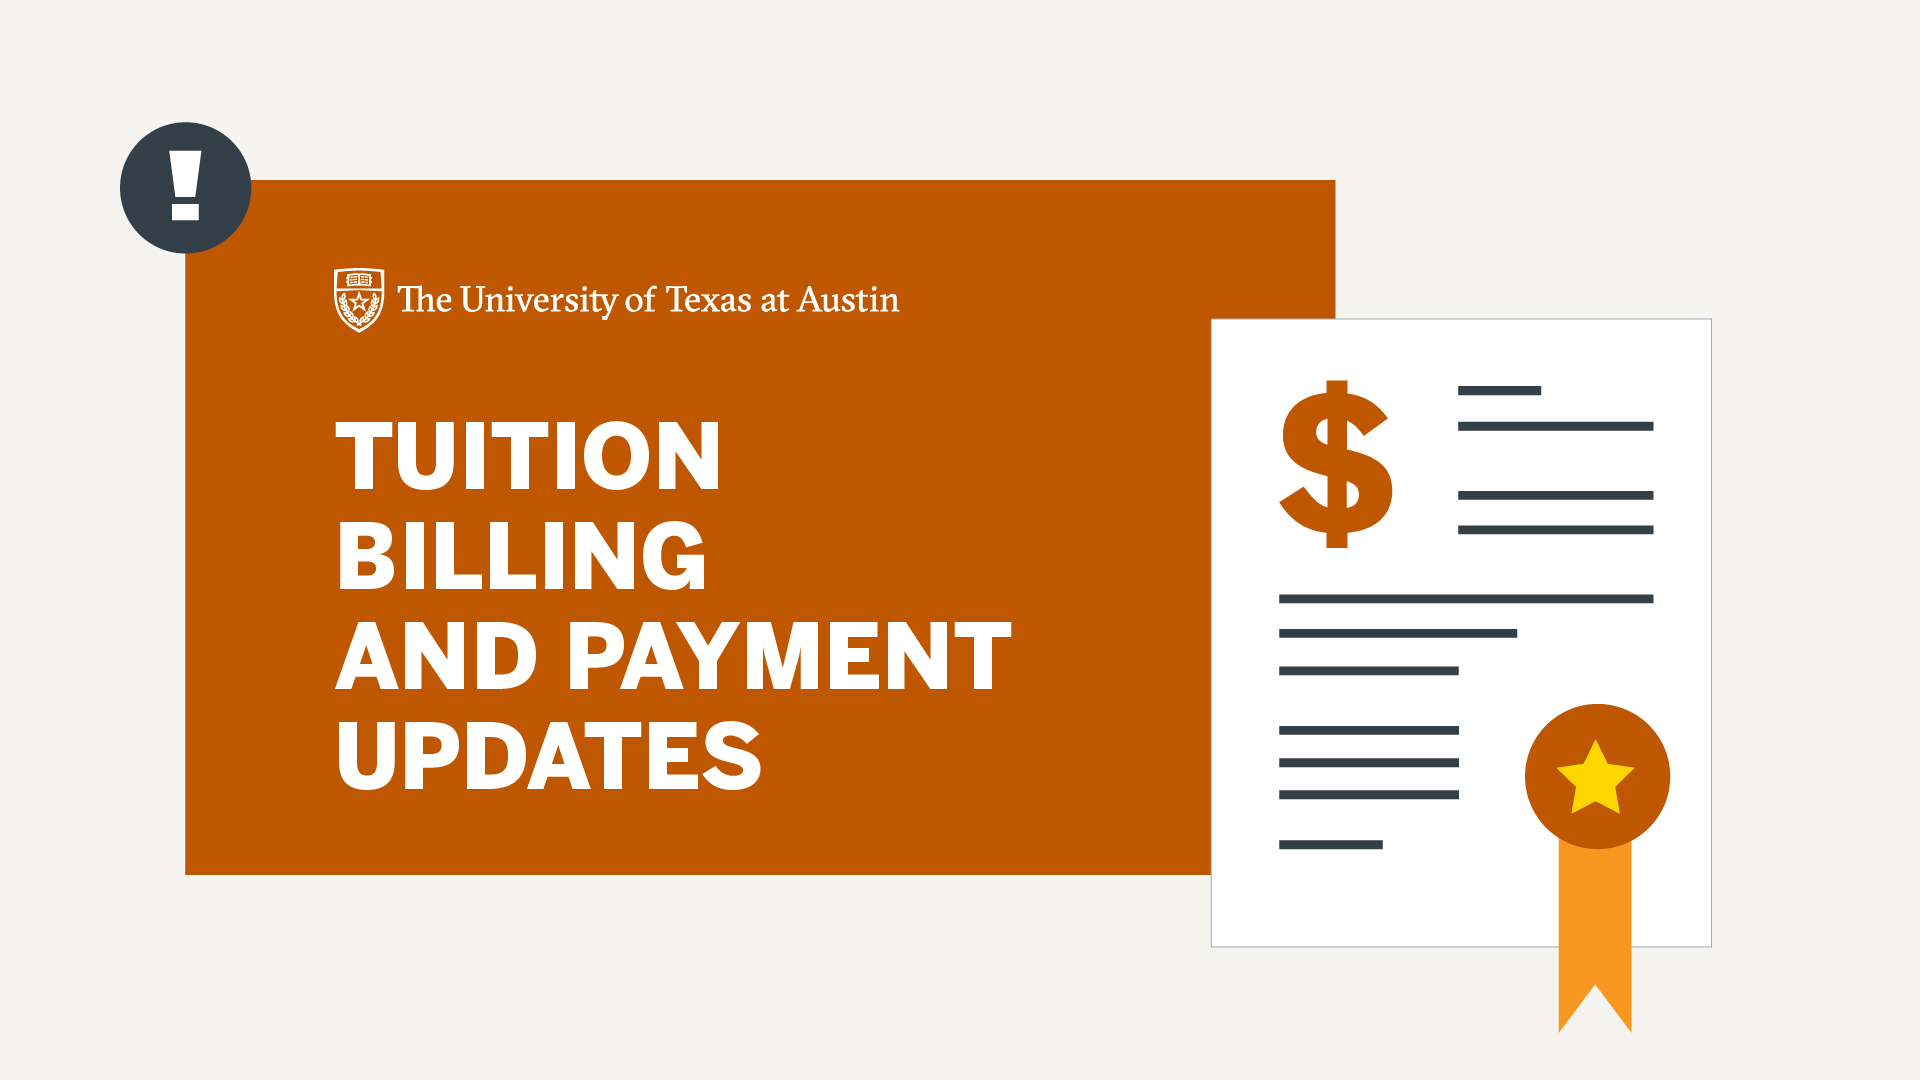 Tuition Billing and Payment Updates video thumbnail, click to play